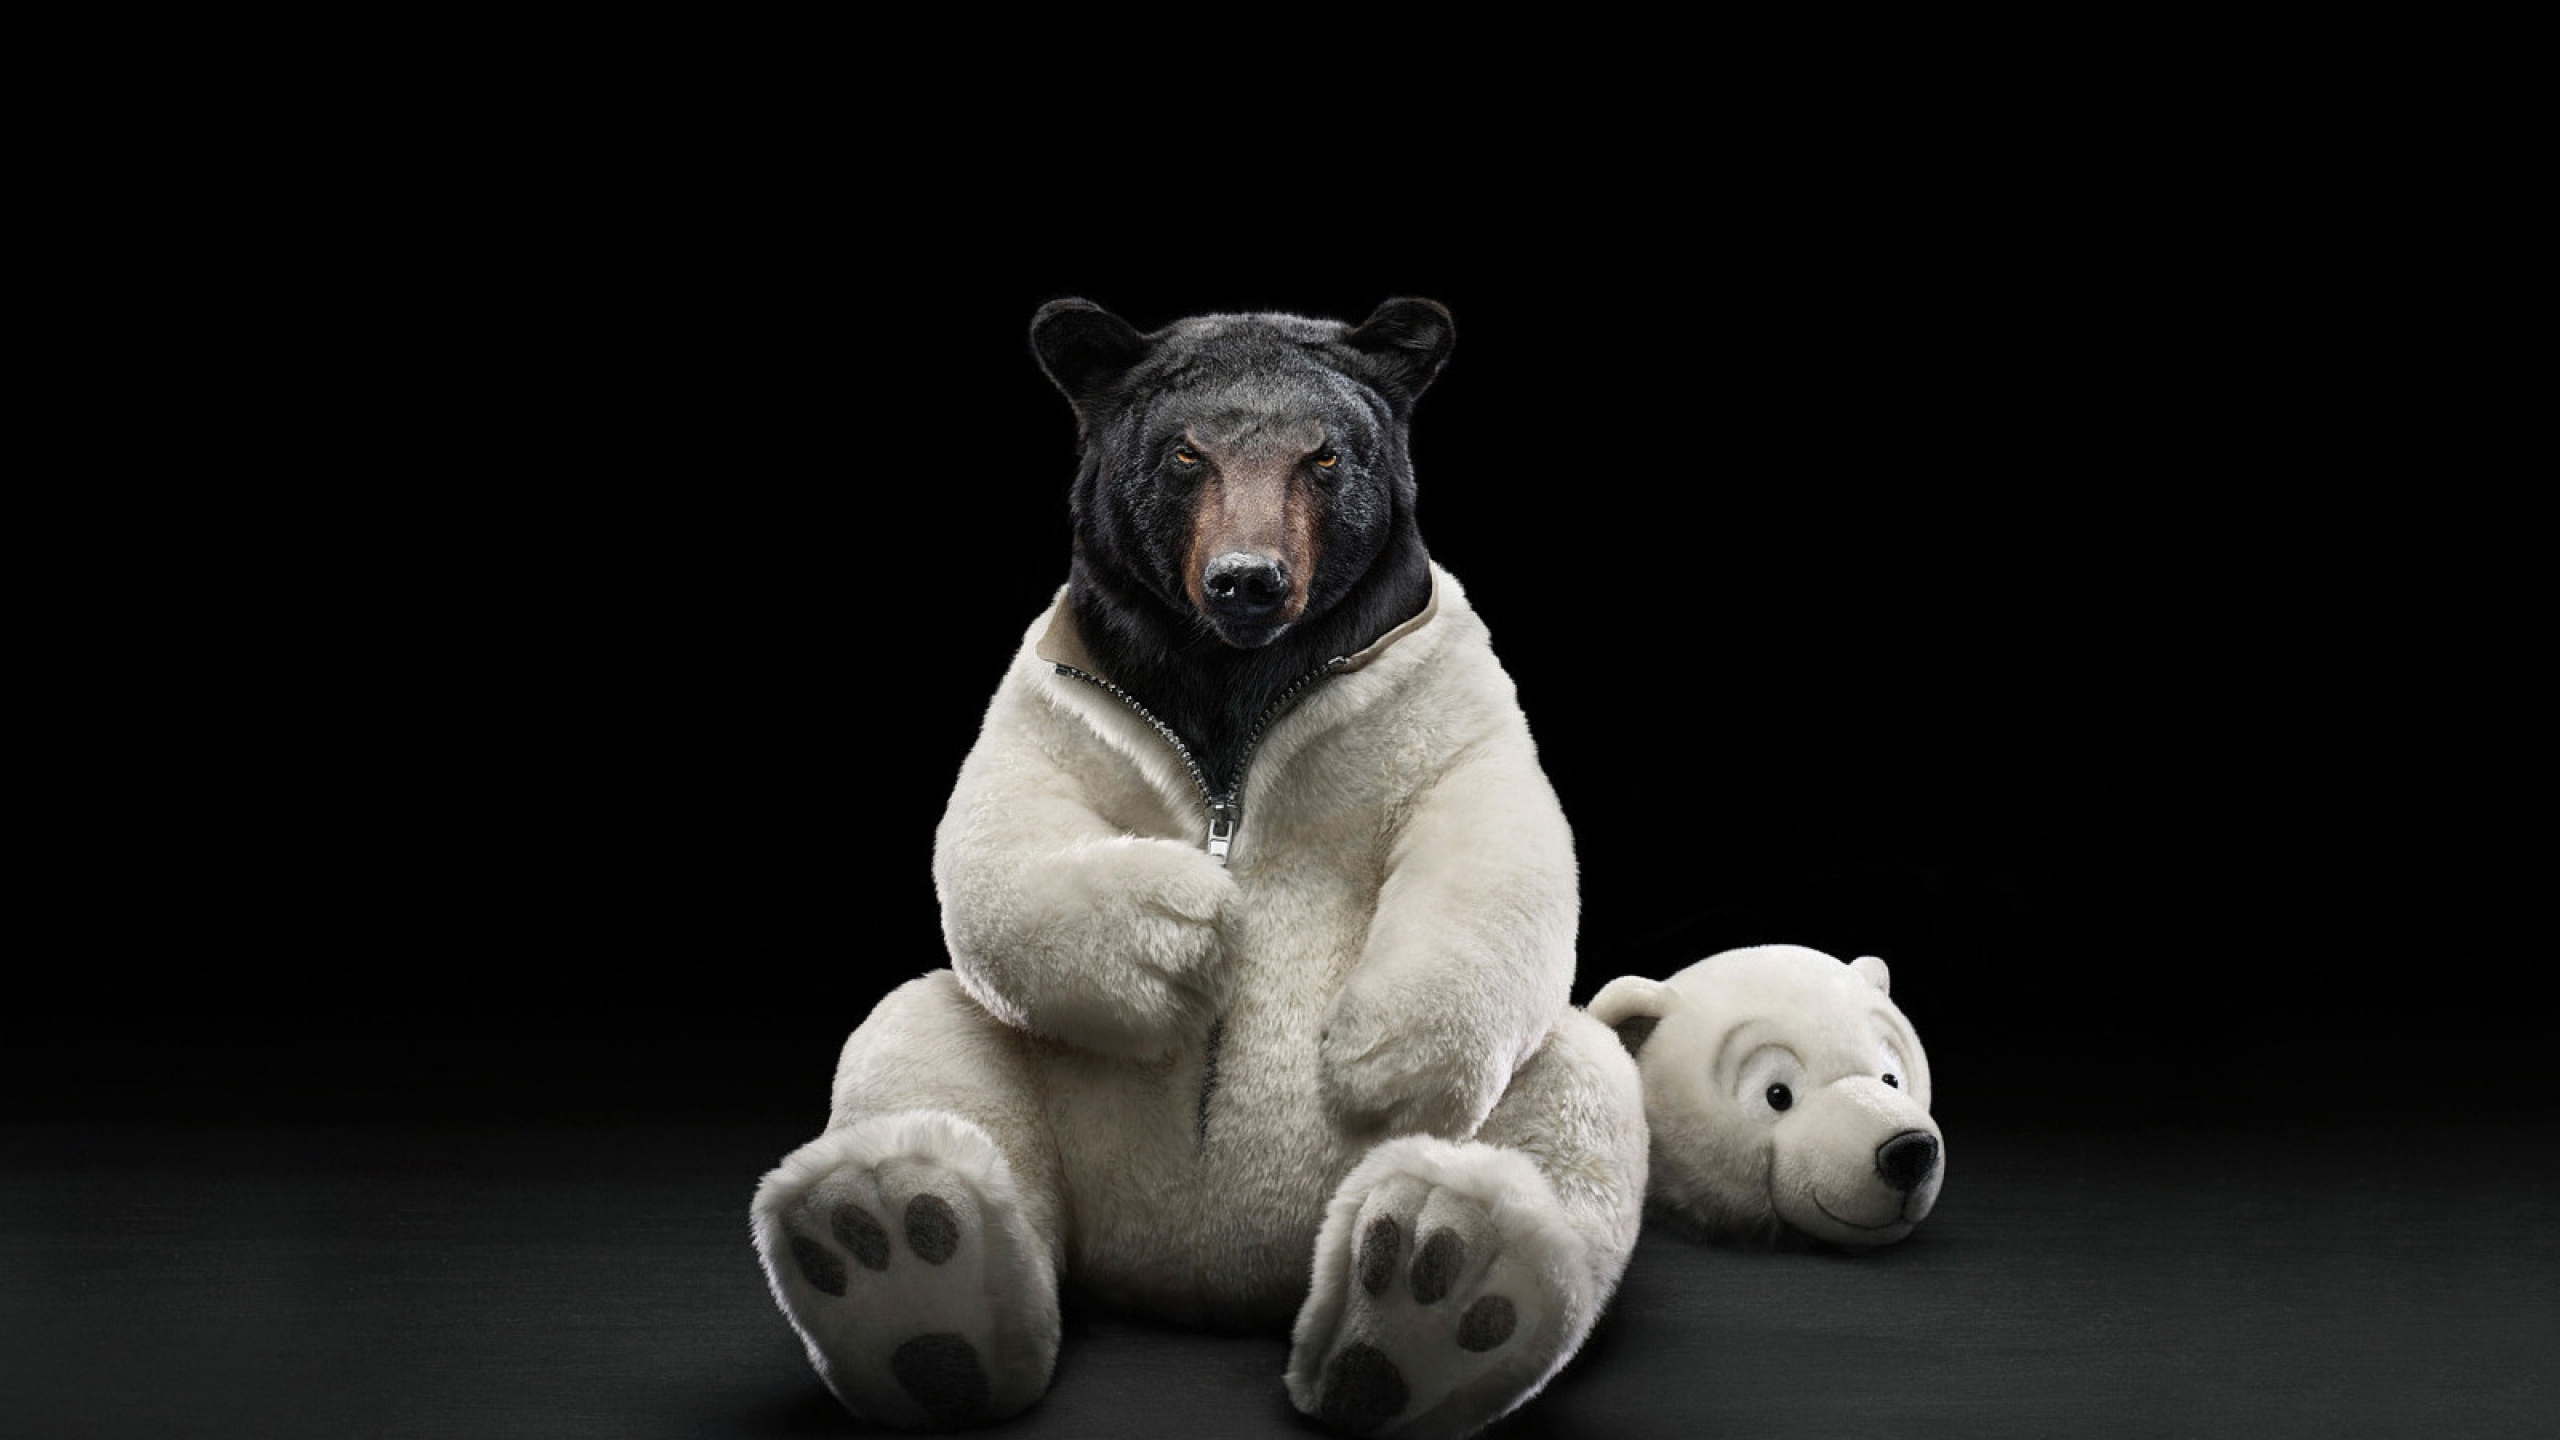 funny_bear_costume_white_polar_brown_2216_2560x1440